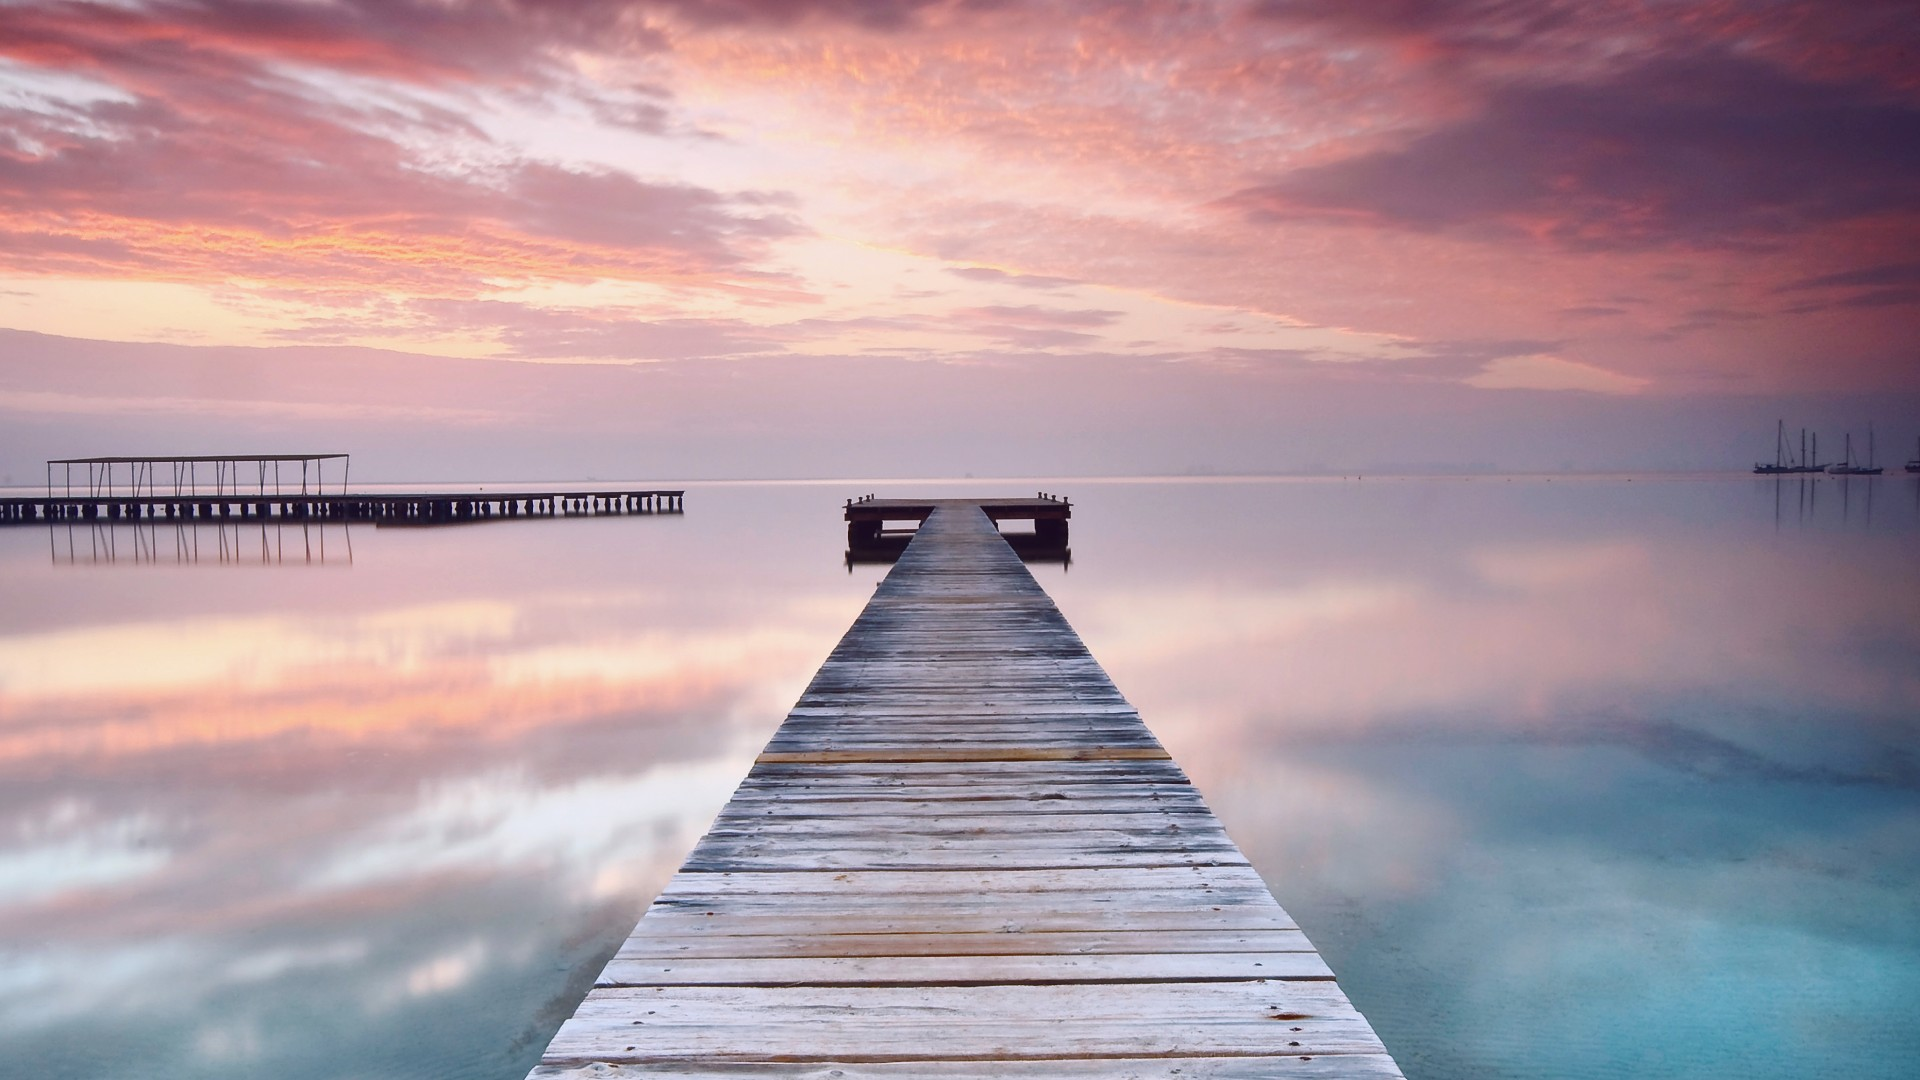 Spain, pink, sky, clouds, ocean, bridge, reflection